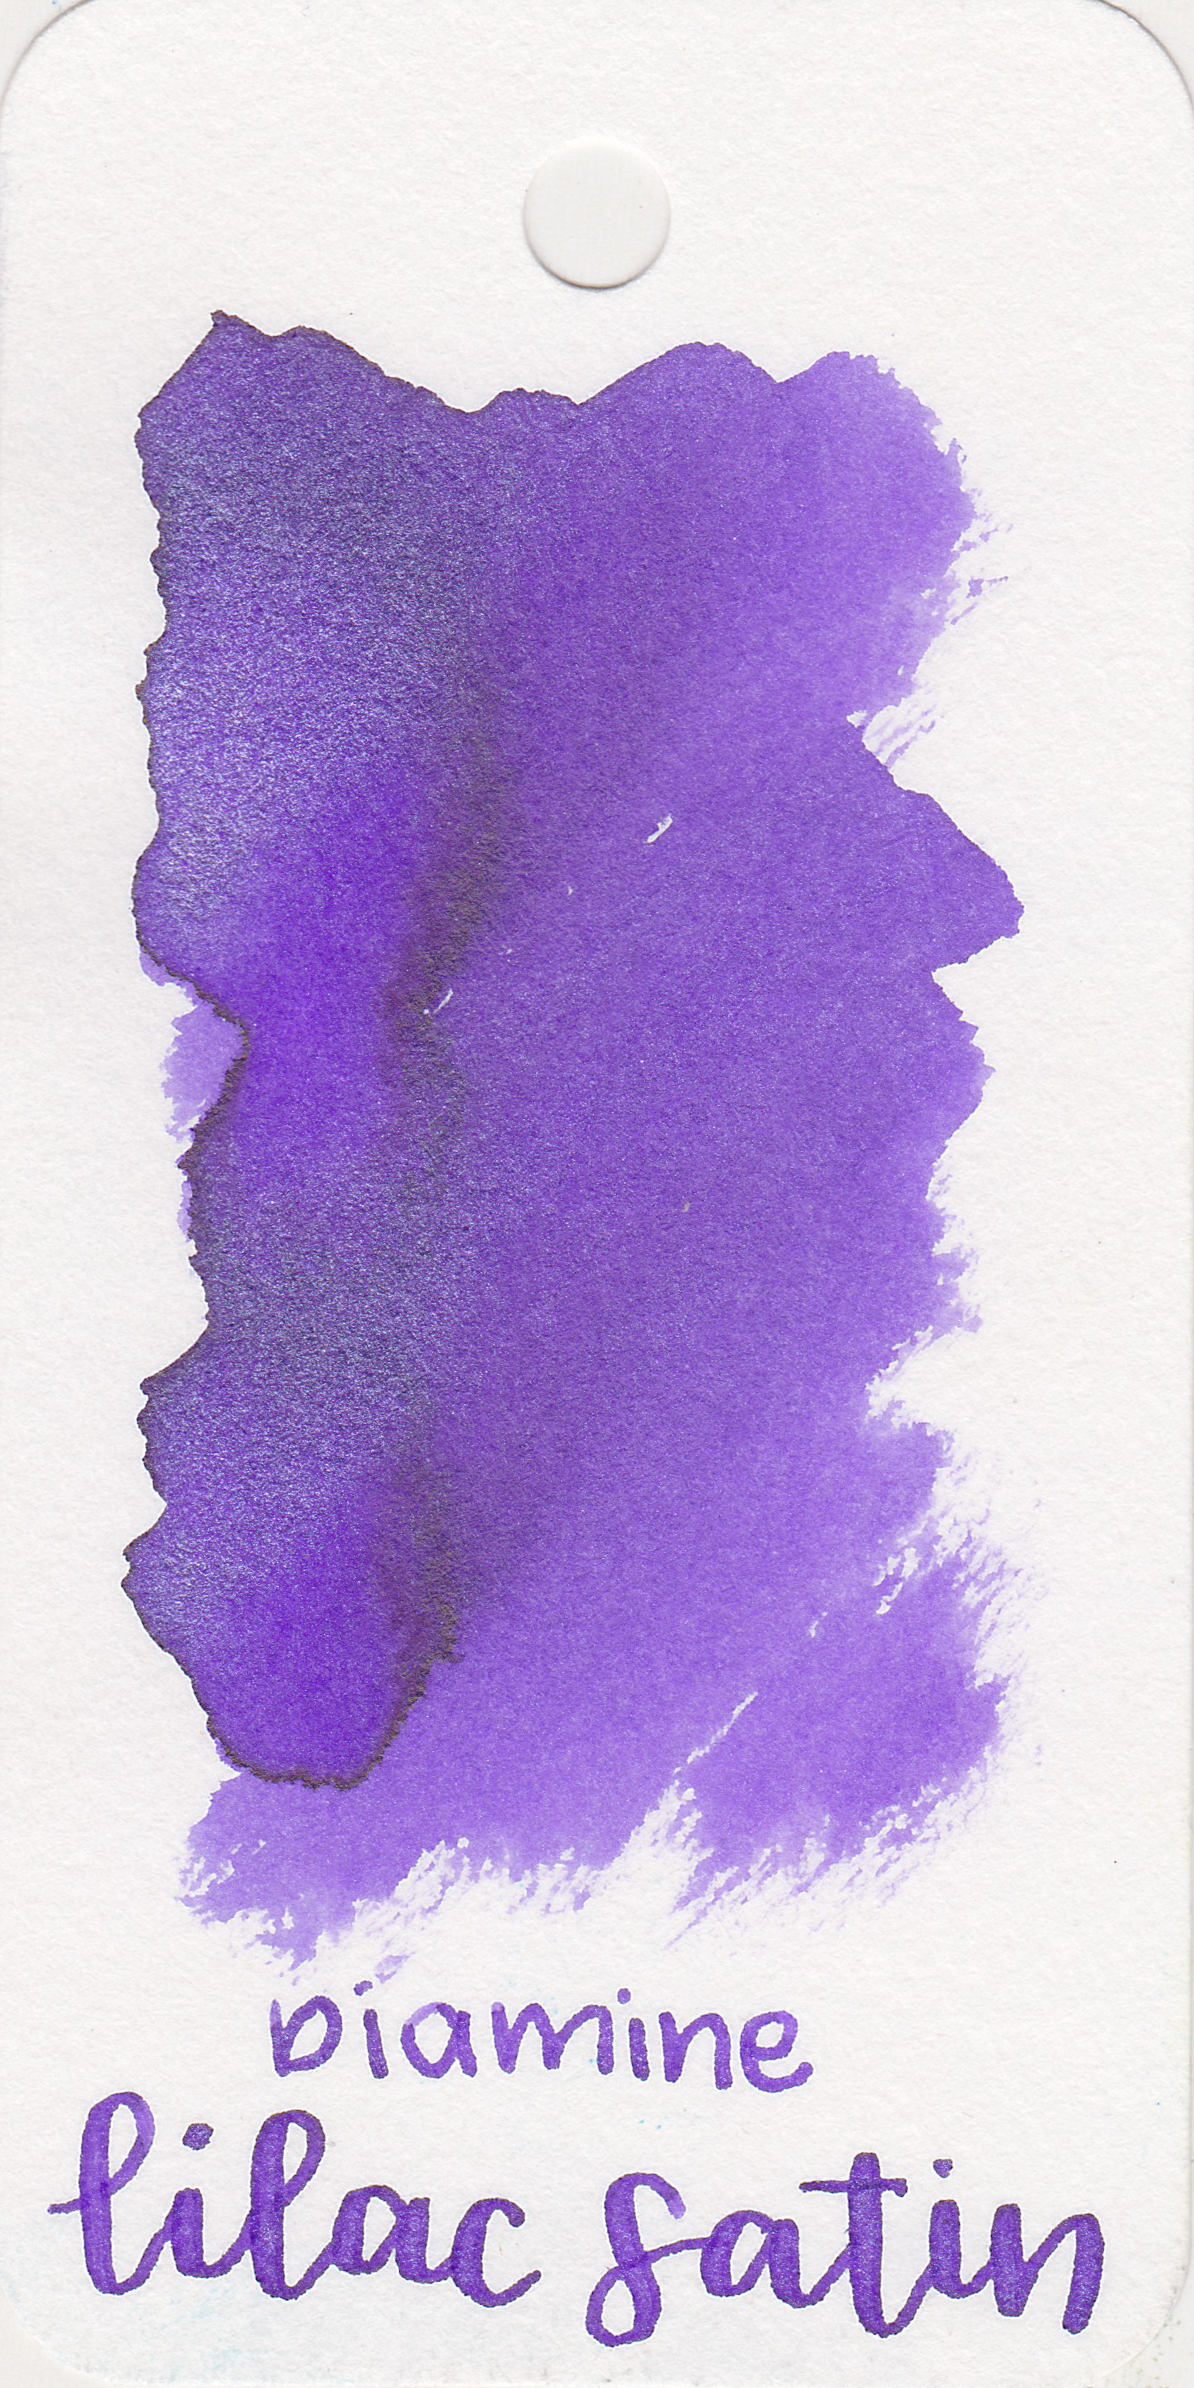 The color: - Lilac Satin is a beautiful light purple. When wet it looks more red-violet, but dries more of a blue-violet. It's a great spring color.